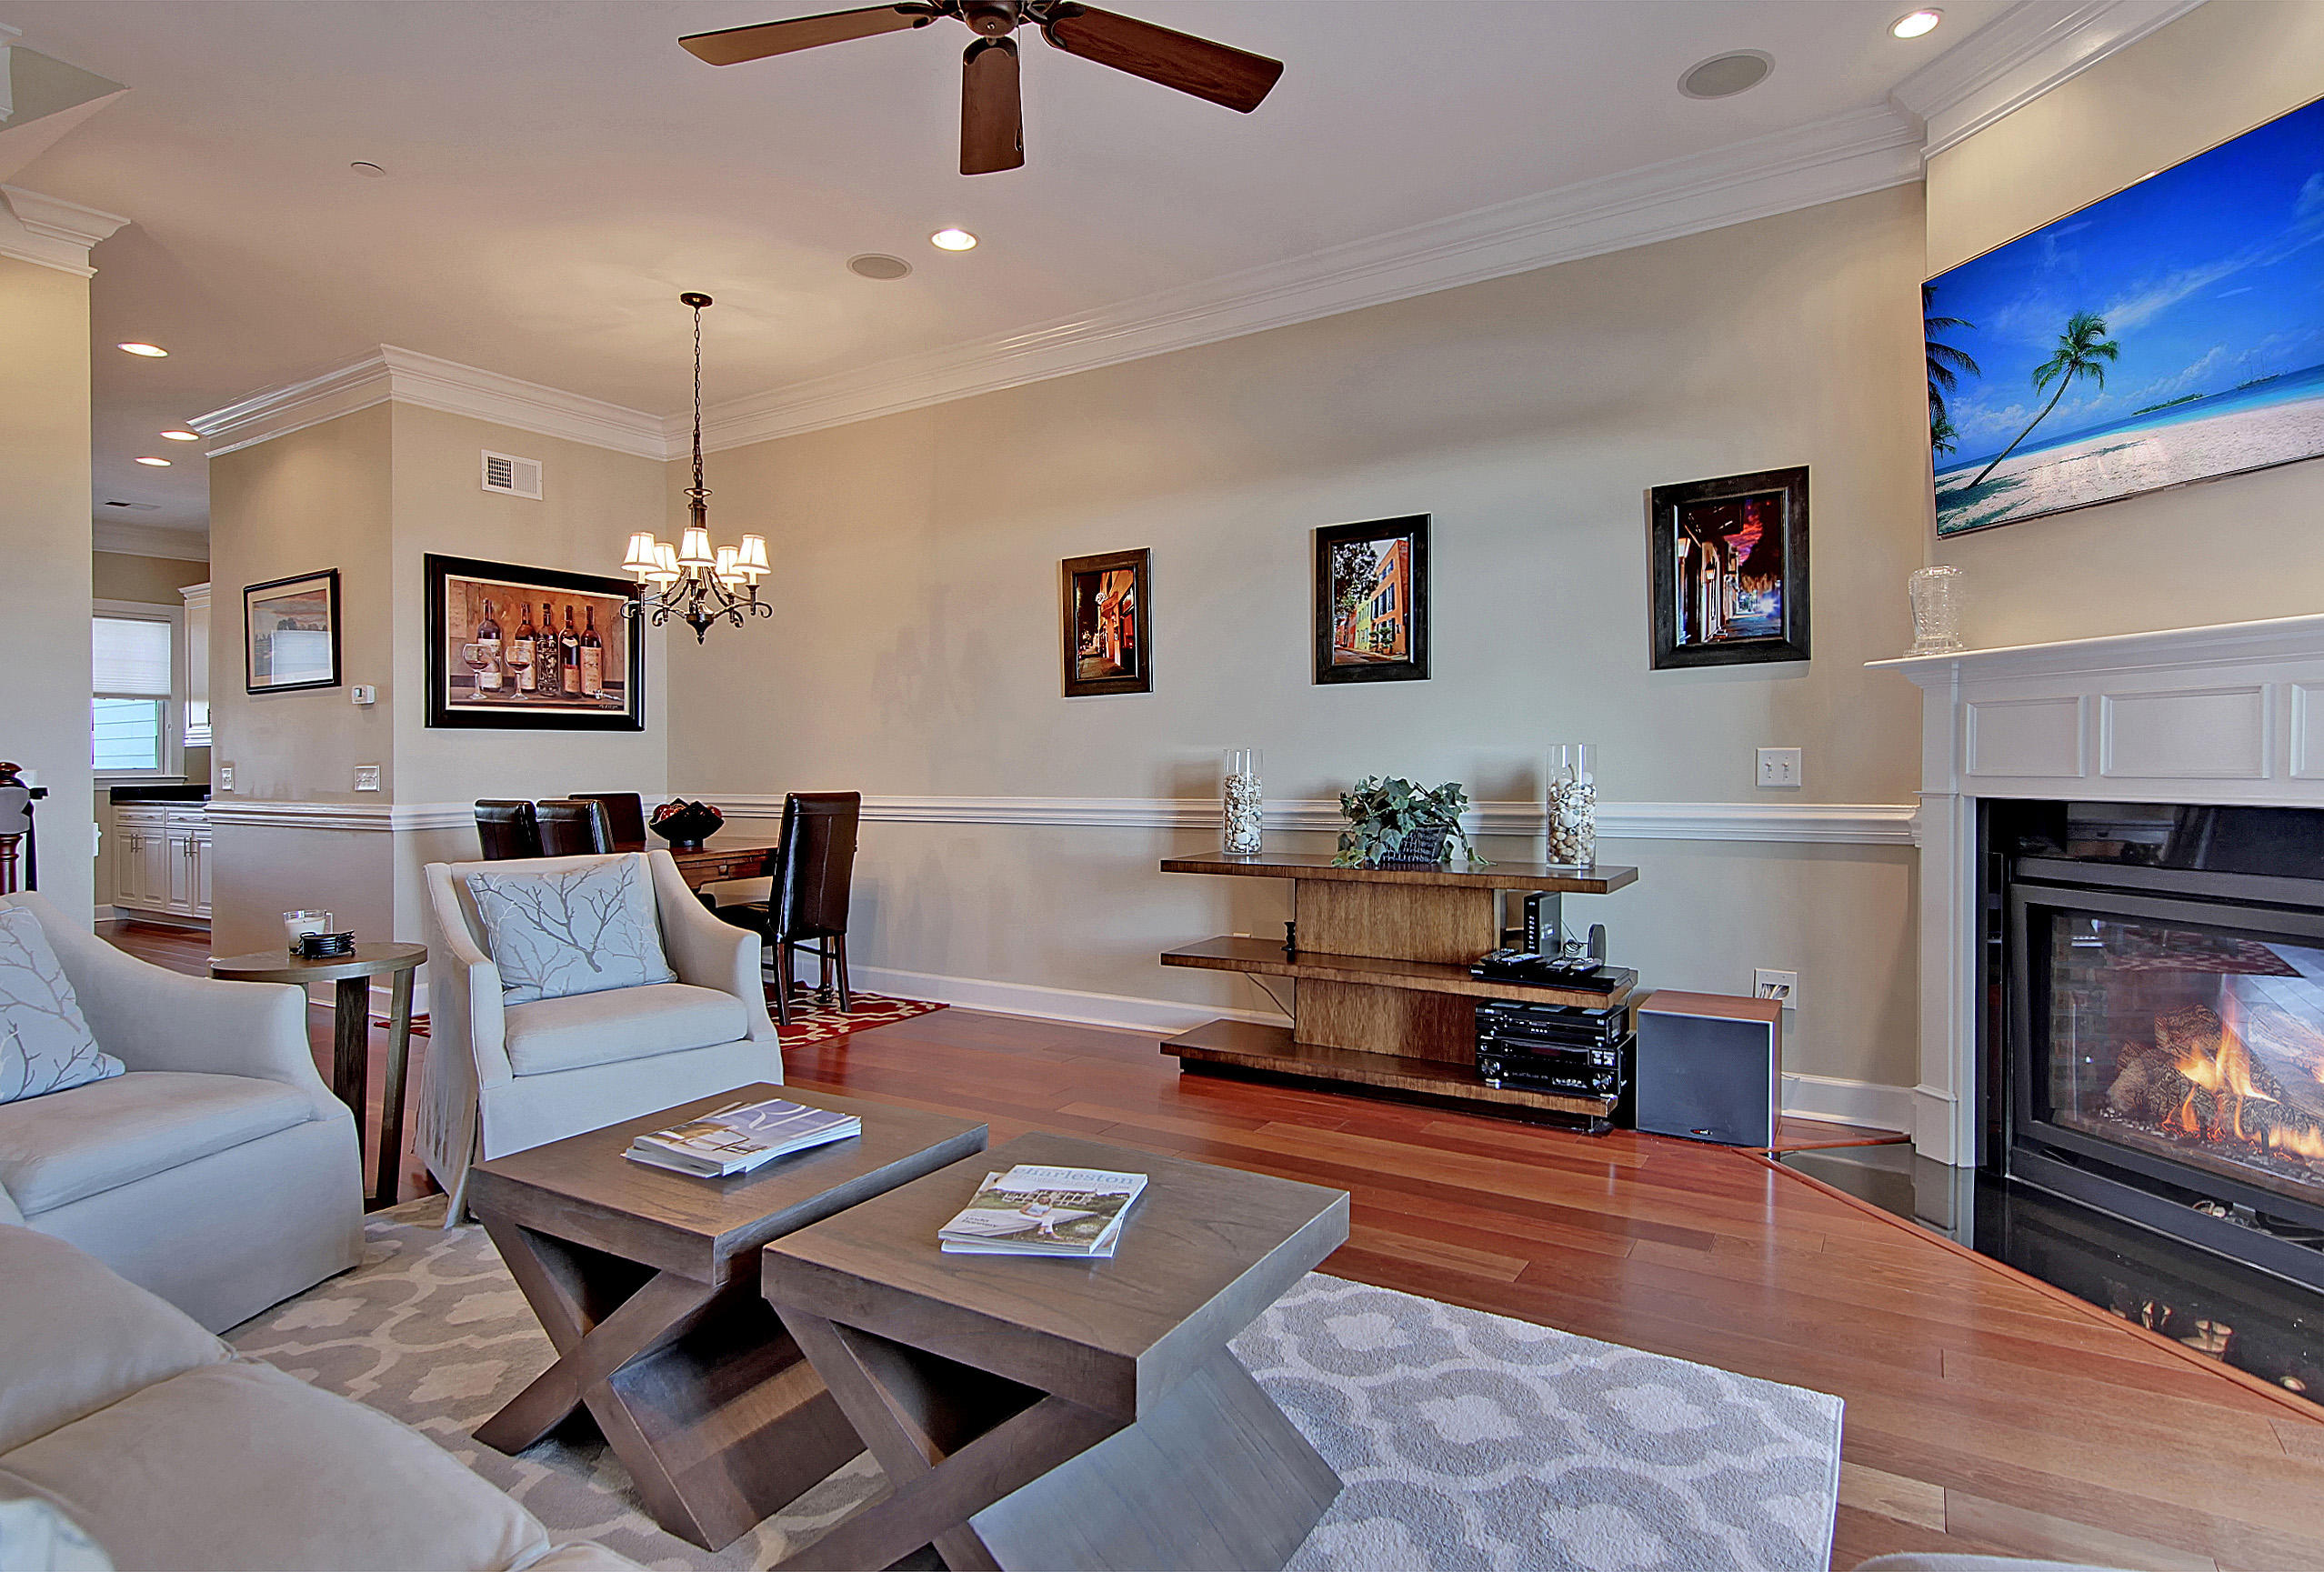 Sawyer's Landing Homes For Sale - 973 Cove Bay, Mount Pleasant, SC - 6